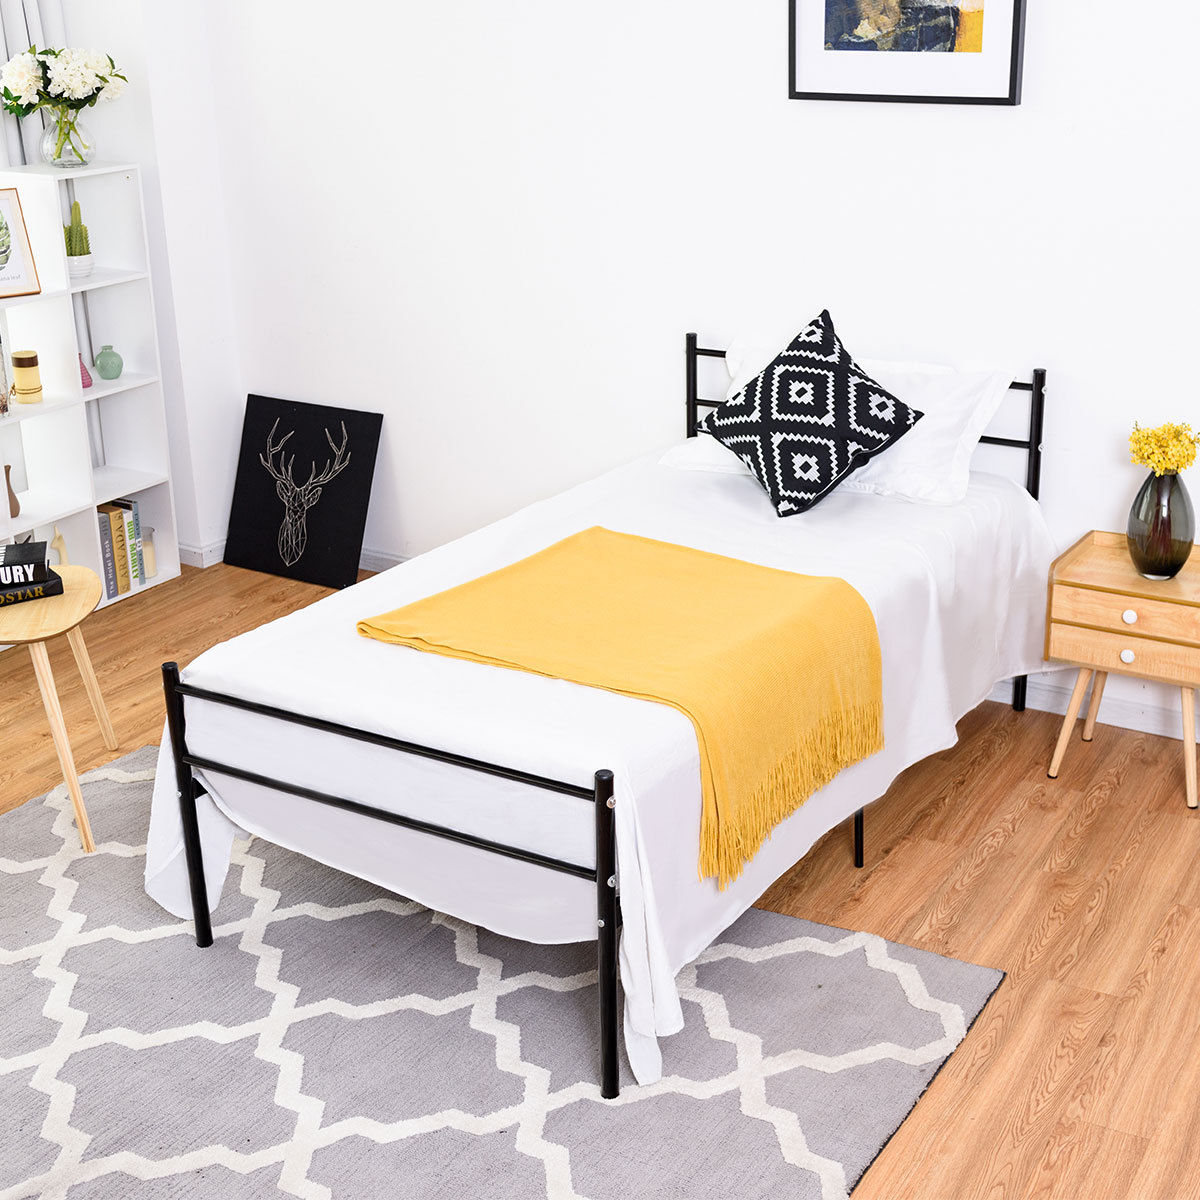 Costway Black Twin Size Metal Bed Frame Platform 6 Legs Headboards